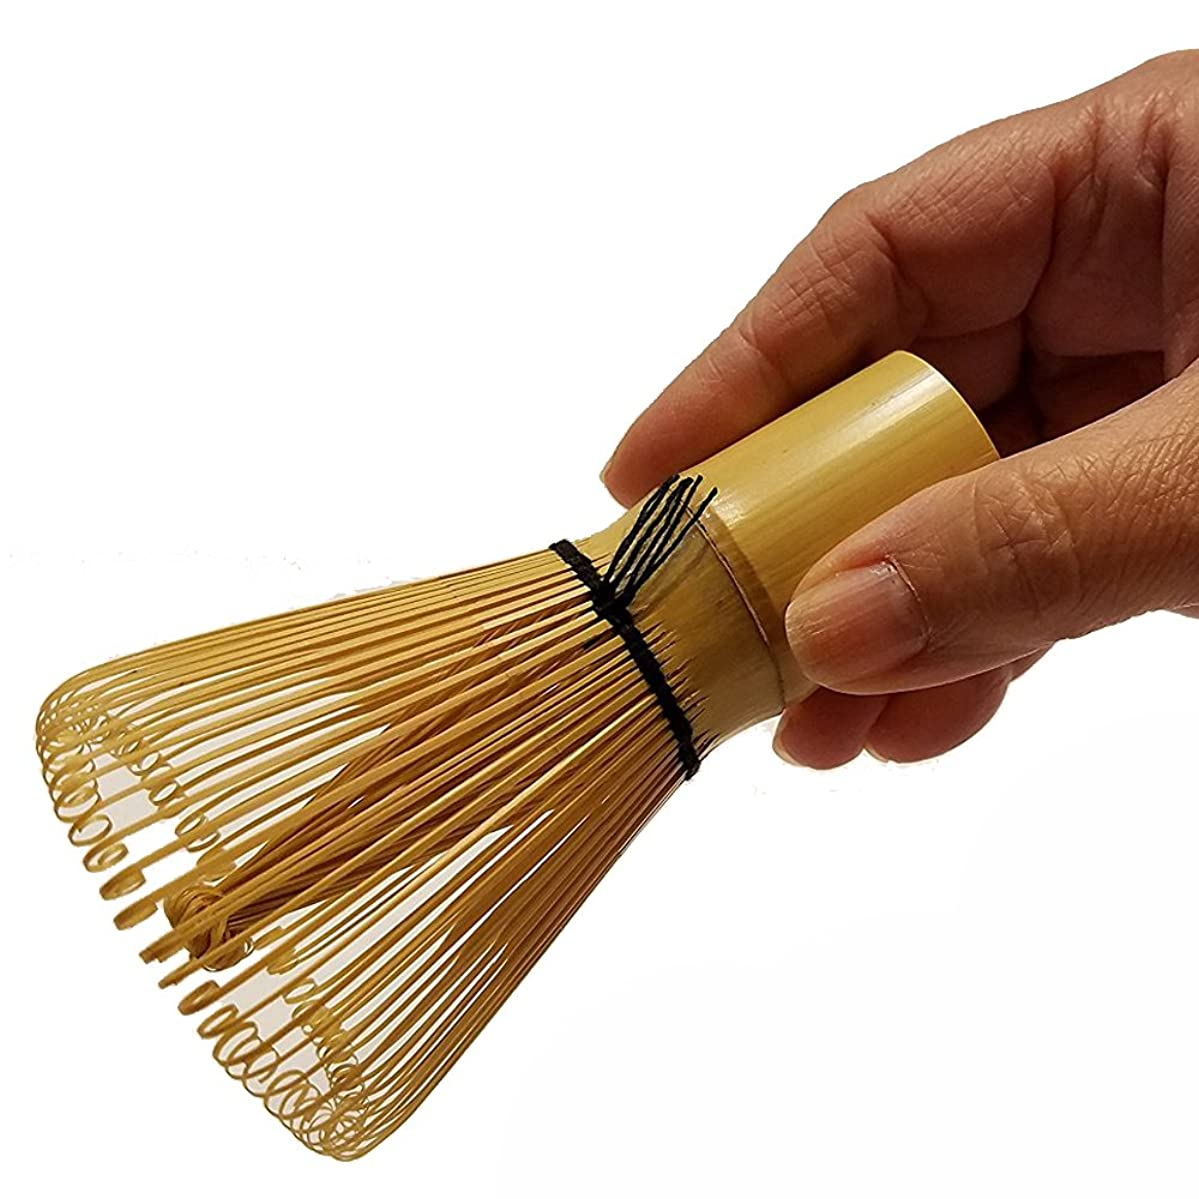 Matcha whisk made in japan traditional bamboo brush chasen tea mixer for preparing intricate foam to matcha tea